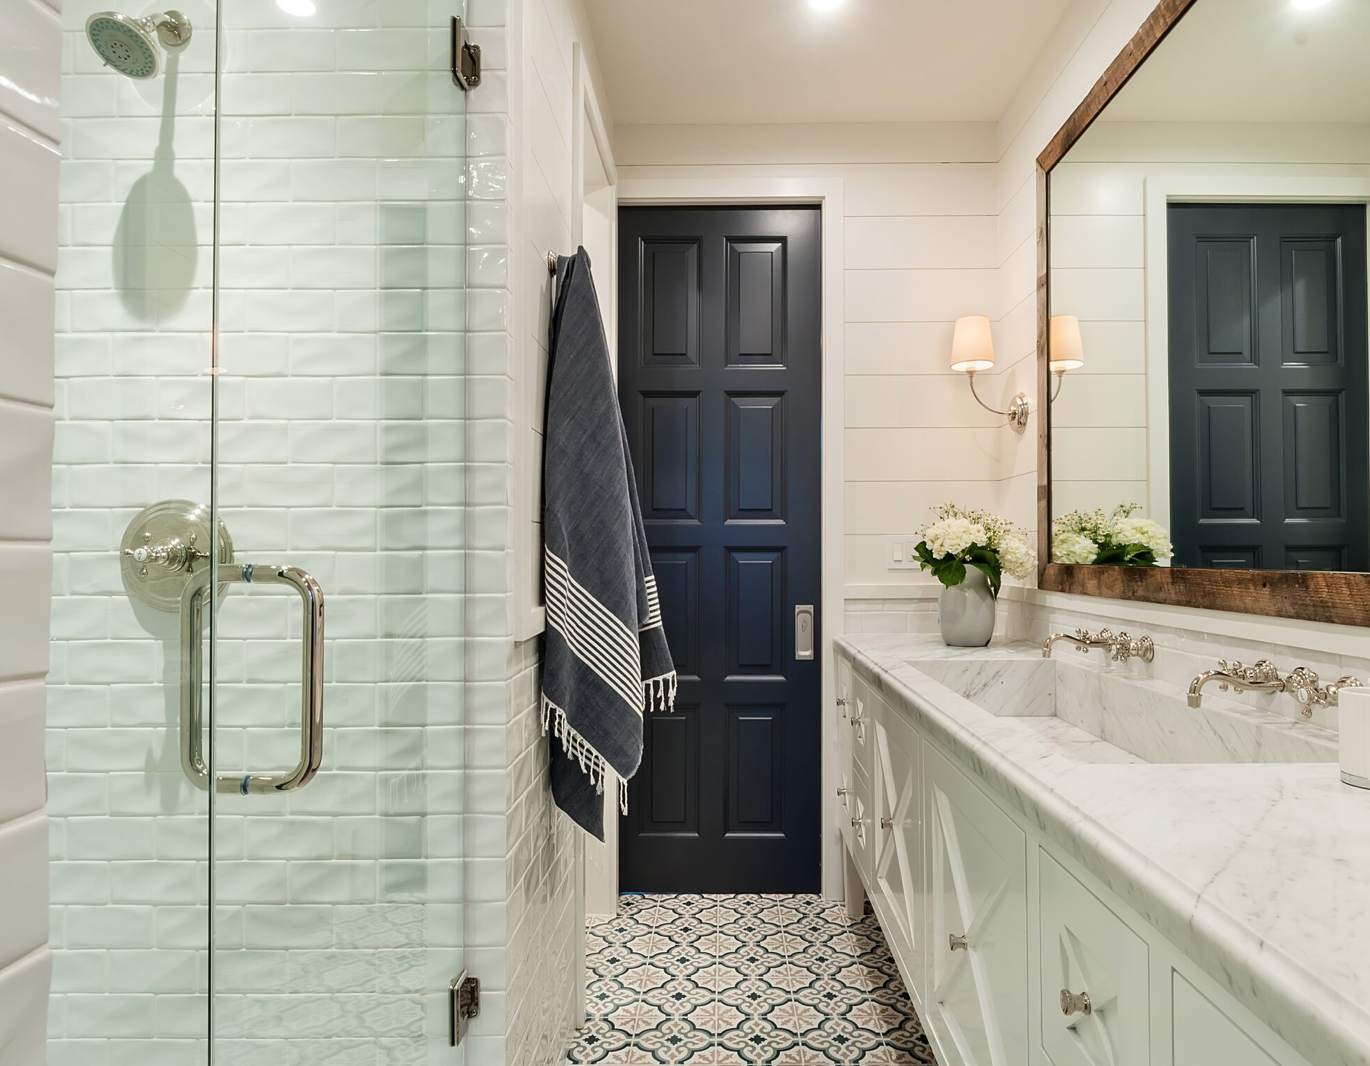 If you've been reading the Lori Dennis Green Blog for very long, you know we're suckers for a ceramic tile that makes a statement! They're durable, stylish, and perfect for the flooring or backsplash of your modern coastal farmhouse.